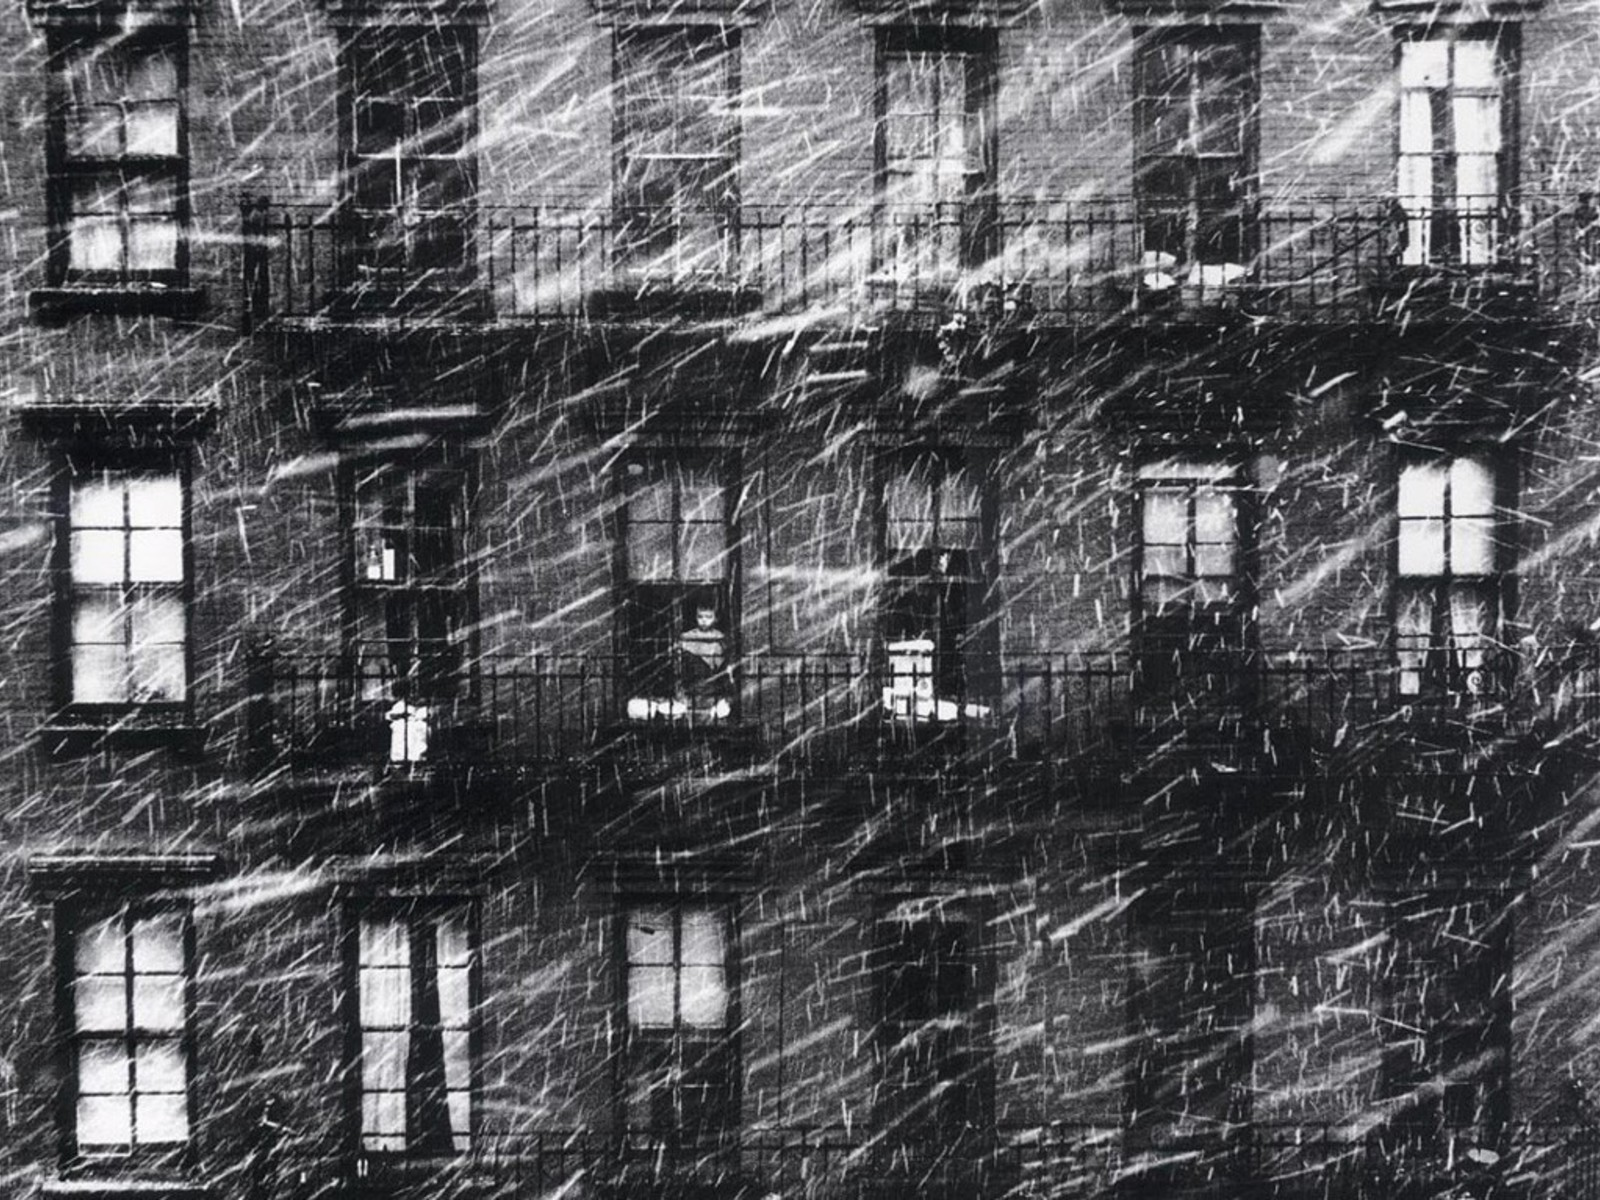 Snow Falling Wallpaper For Ipad Snow Houses Grayscale Old Photography Windows Paul Himmel